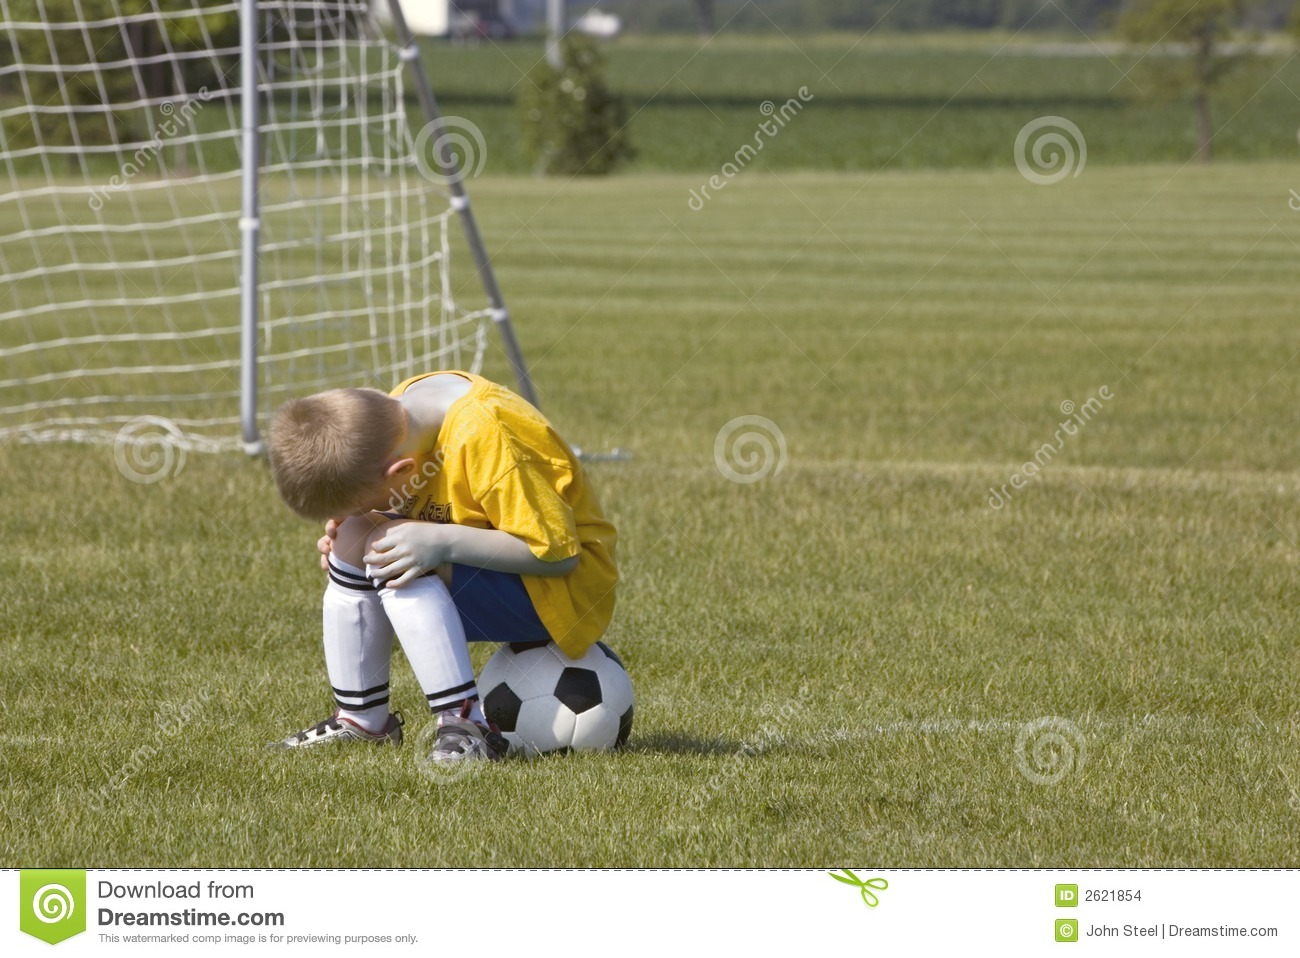 Here is a photo of a young boy sitting on a soccer ball. He is ...